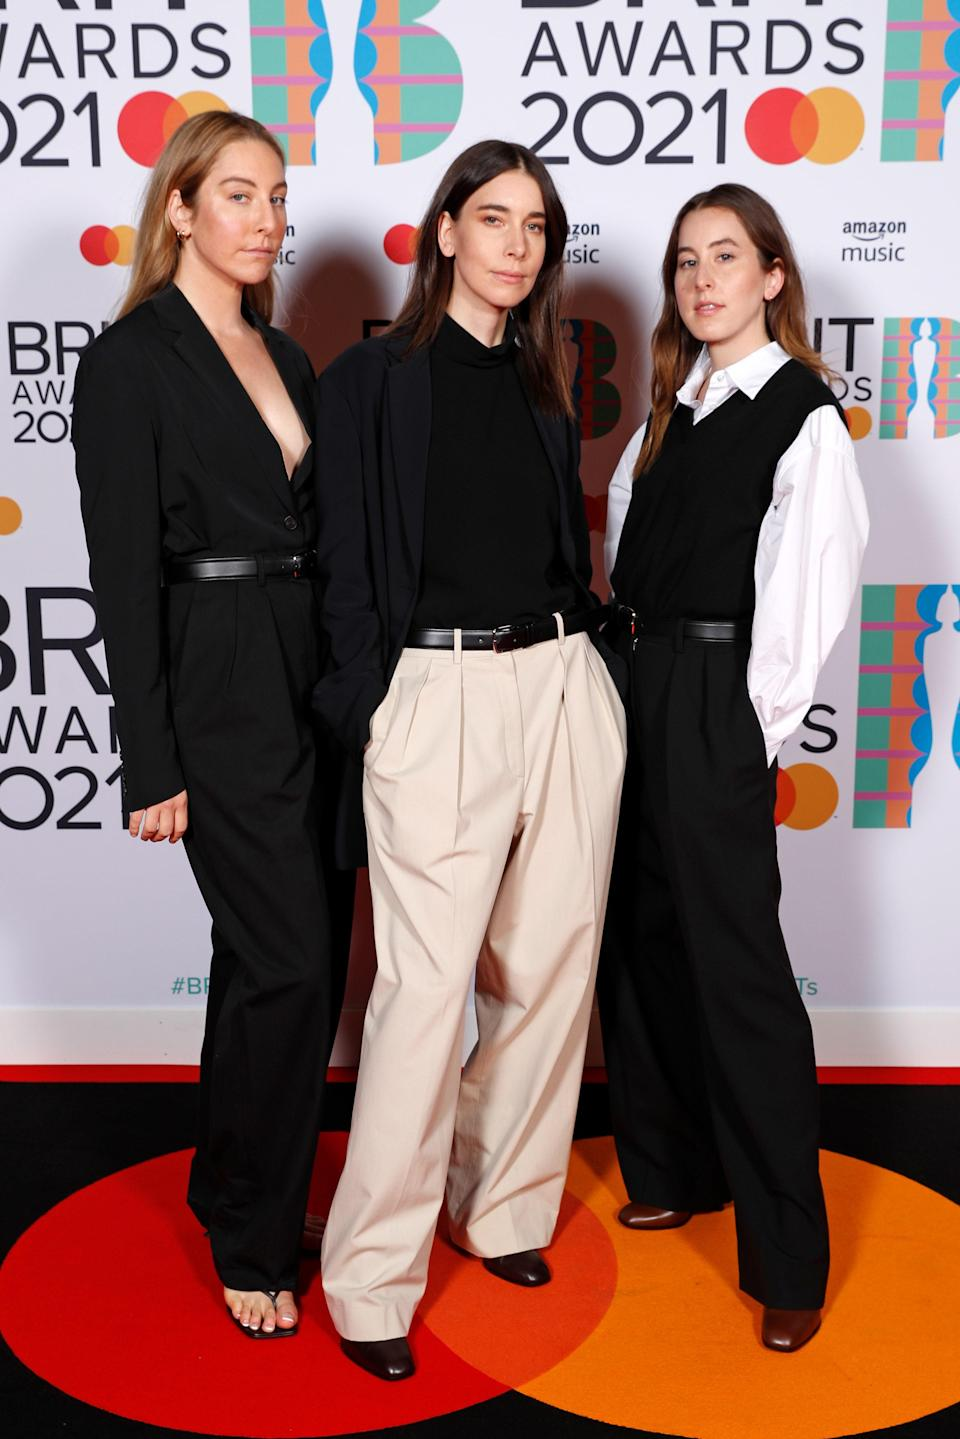 <p>WHO: Haim</p> <p>WHAT: The Row</p> <p>WHERE: The 2021 Brit Awards</p> <p>WHEN: May 11</p>